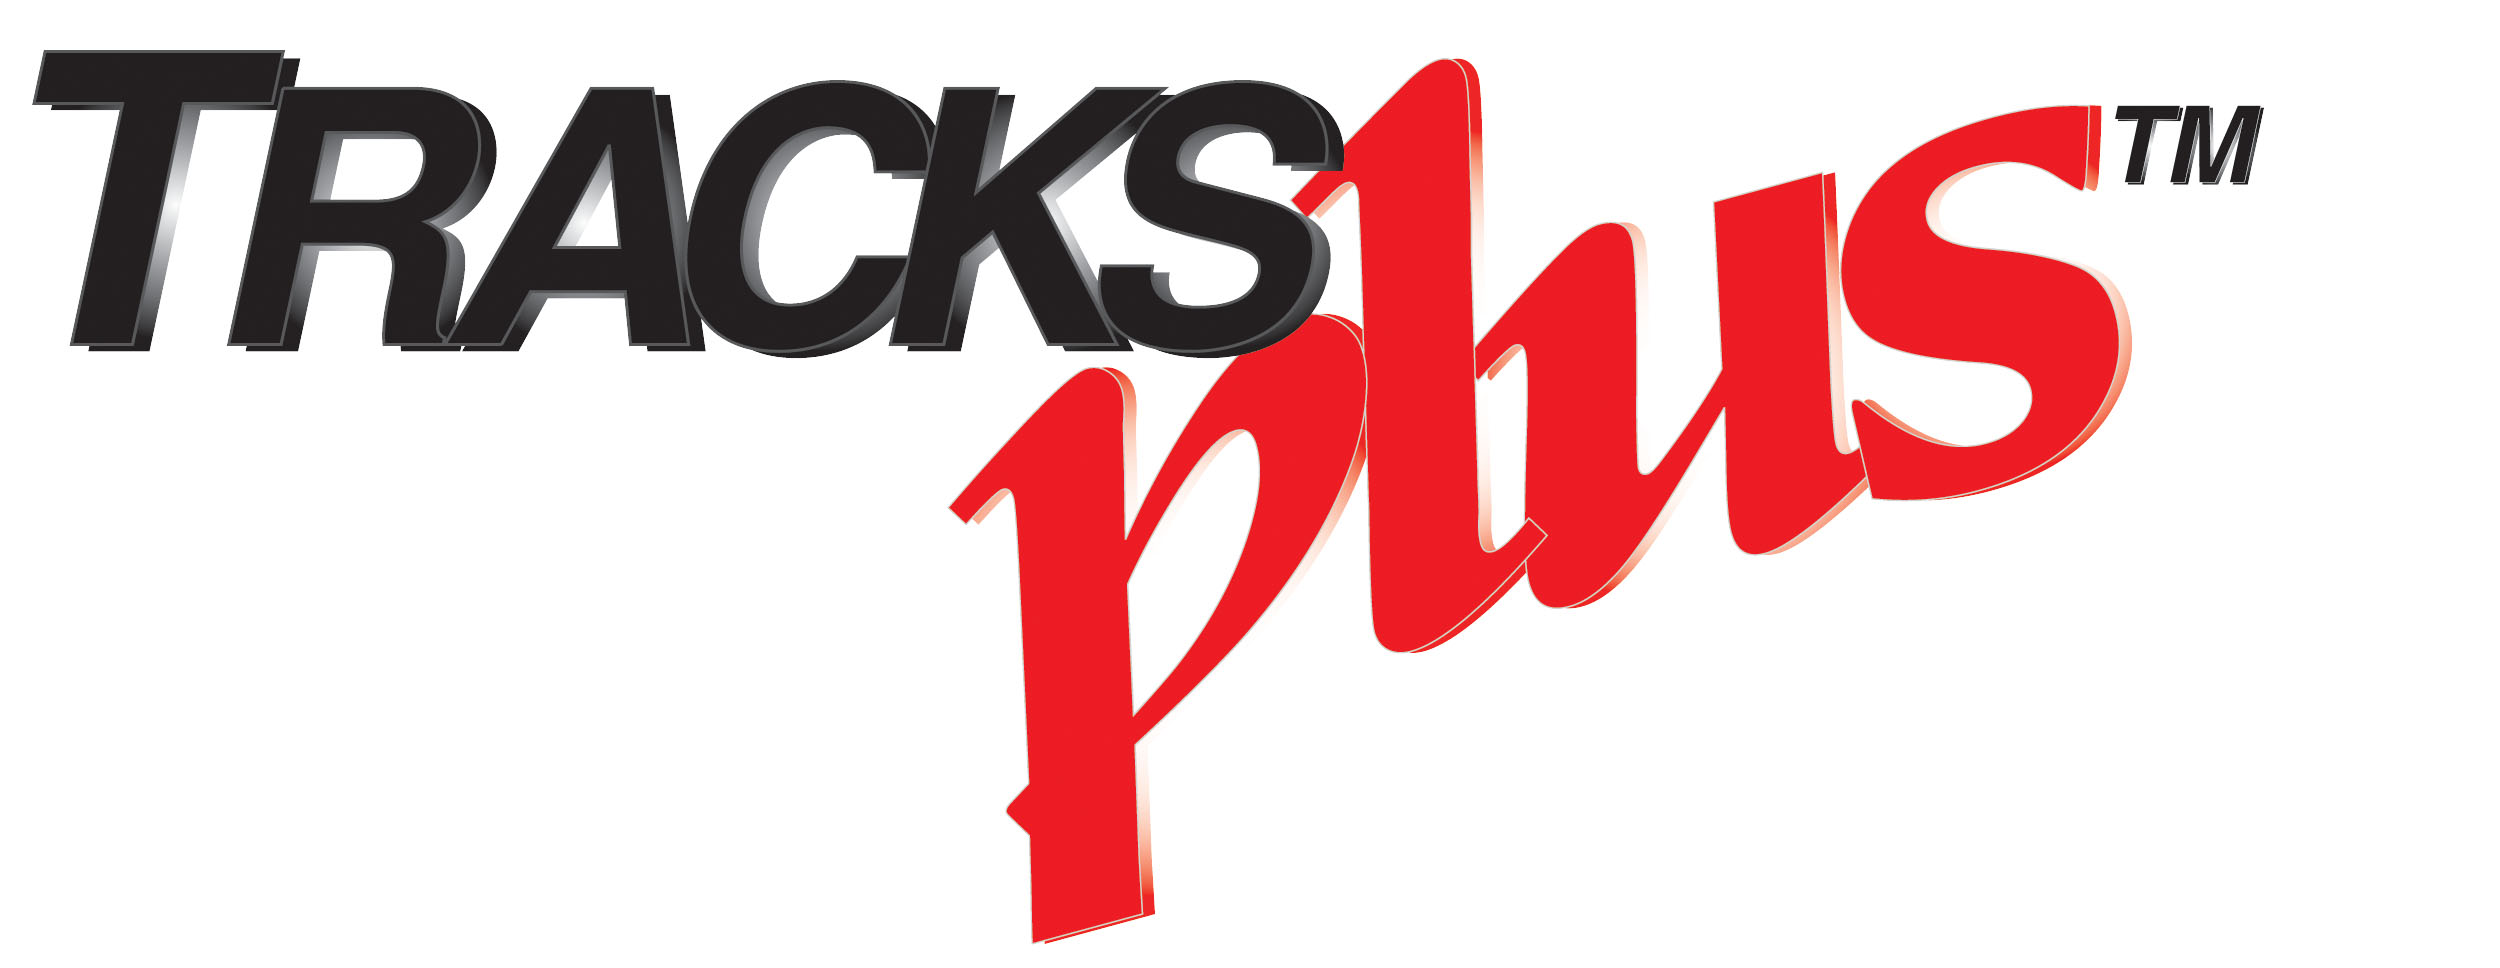 tracks-plus-logo-w-attach-file.jpg